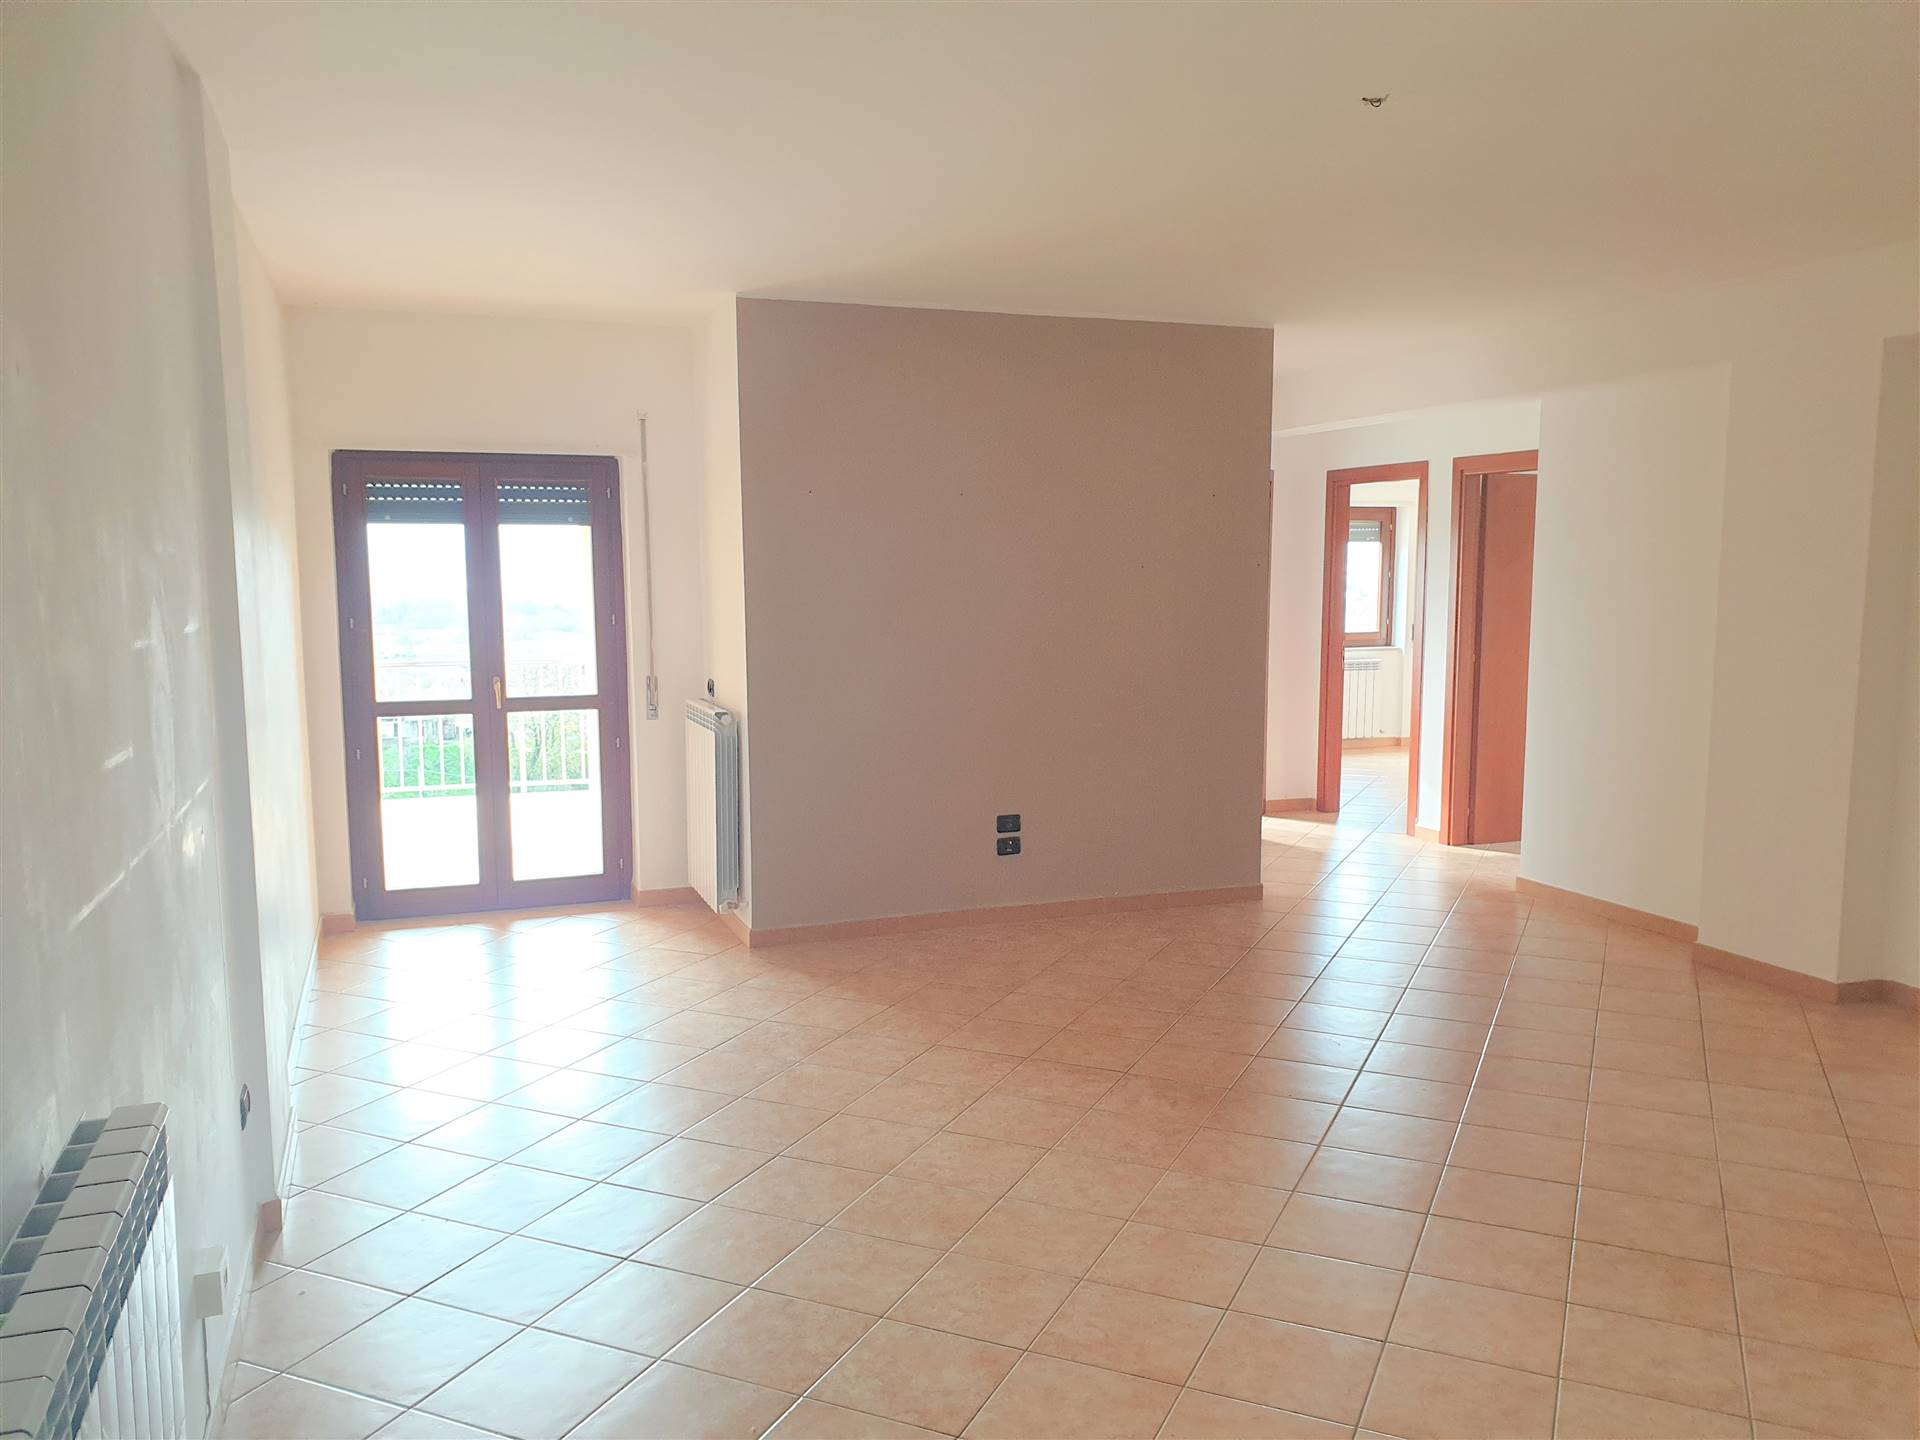 PETRARO, ROSE, Apartment for rent of 135 Sq. mt., Excellent Condition, Heating Individual heating system, Energetic class: C, Epi: 0 kwh/m2 year,